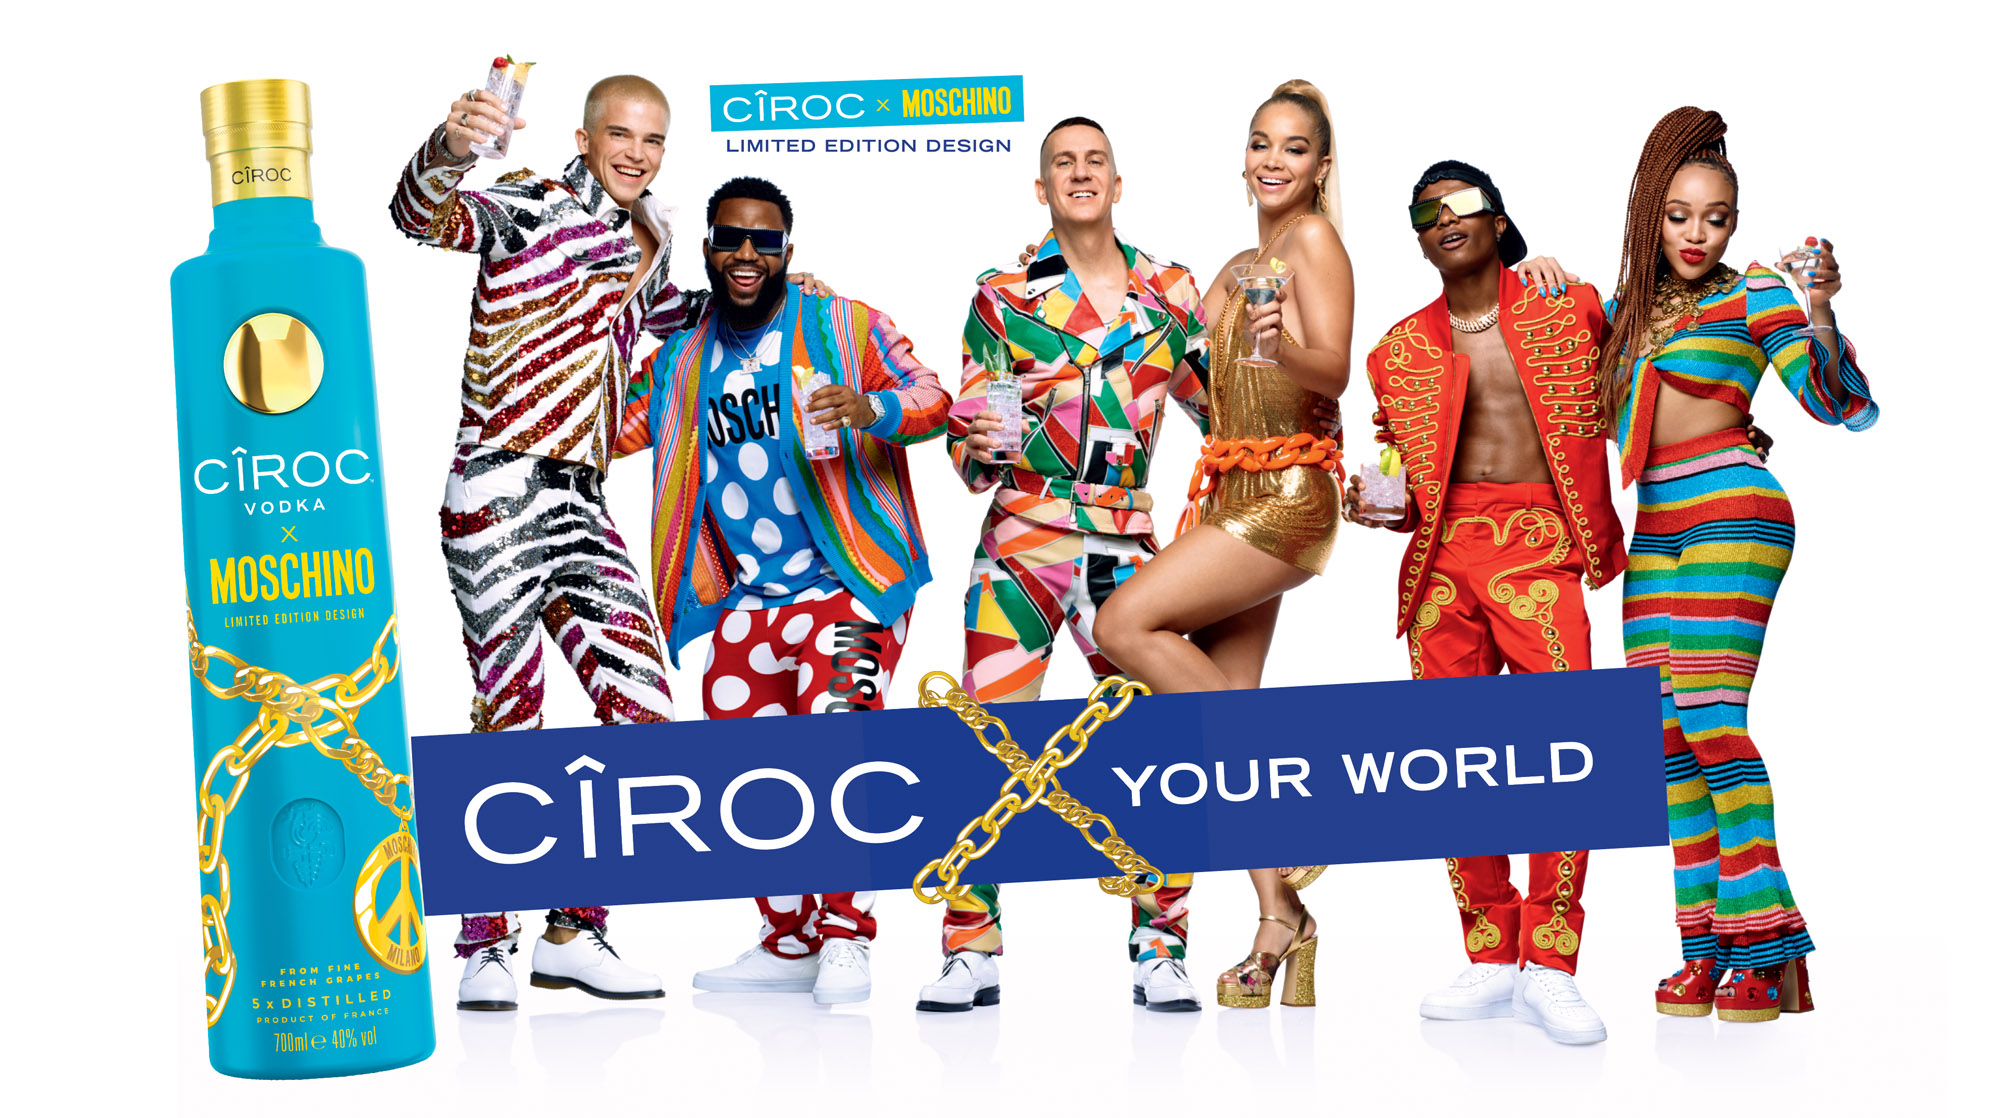 Ciroc x Moschino Key Visual 3.jpg